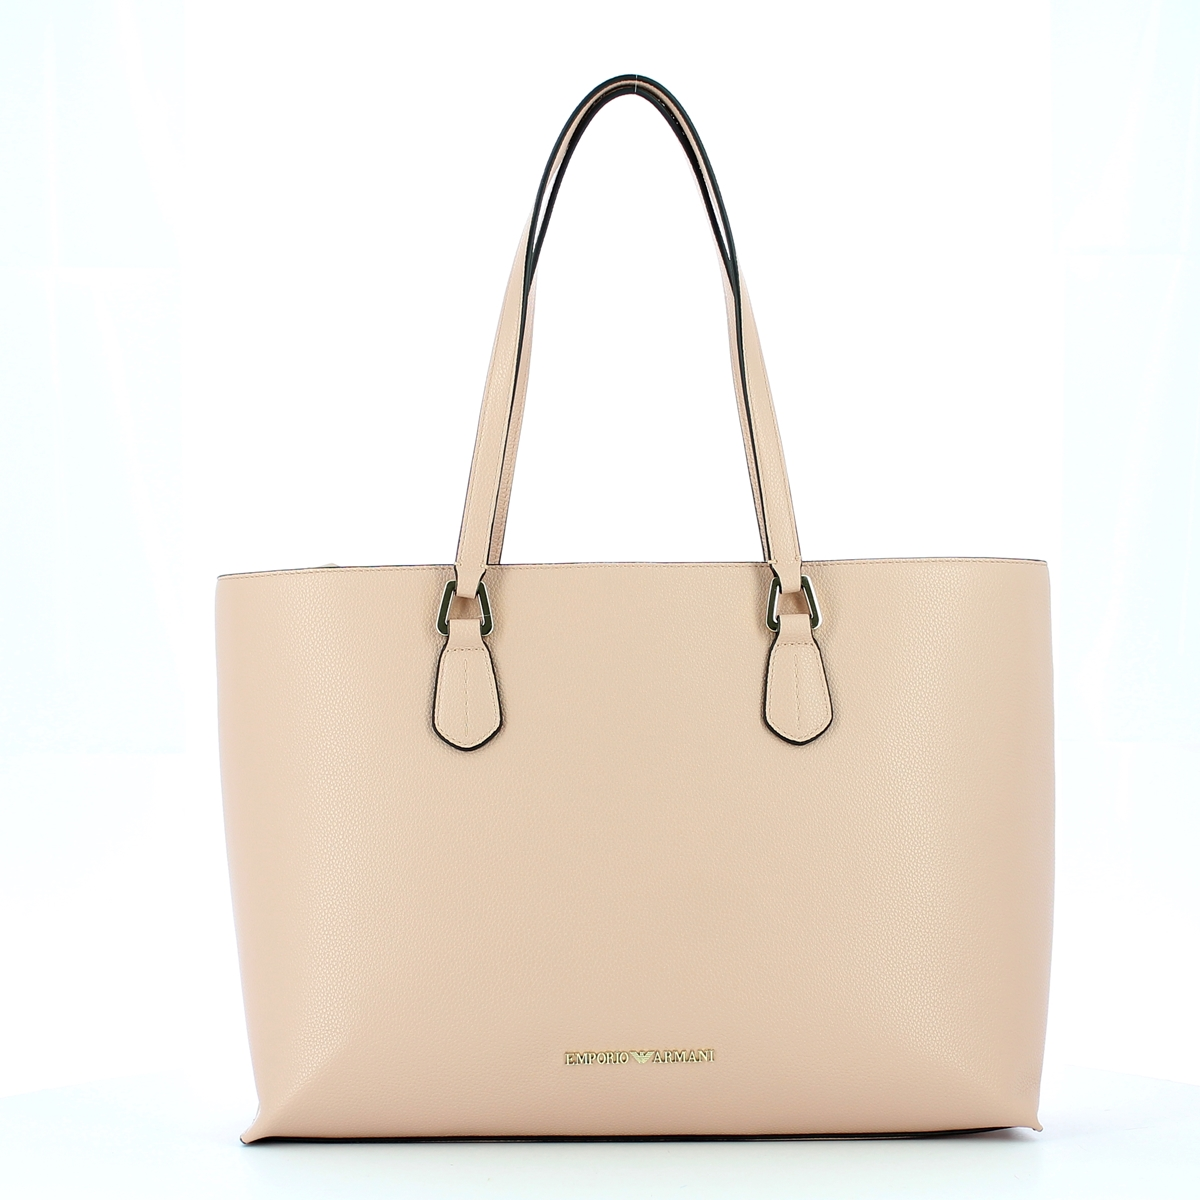 SHOPPING BAG 2351810